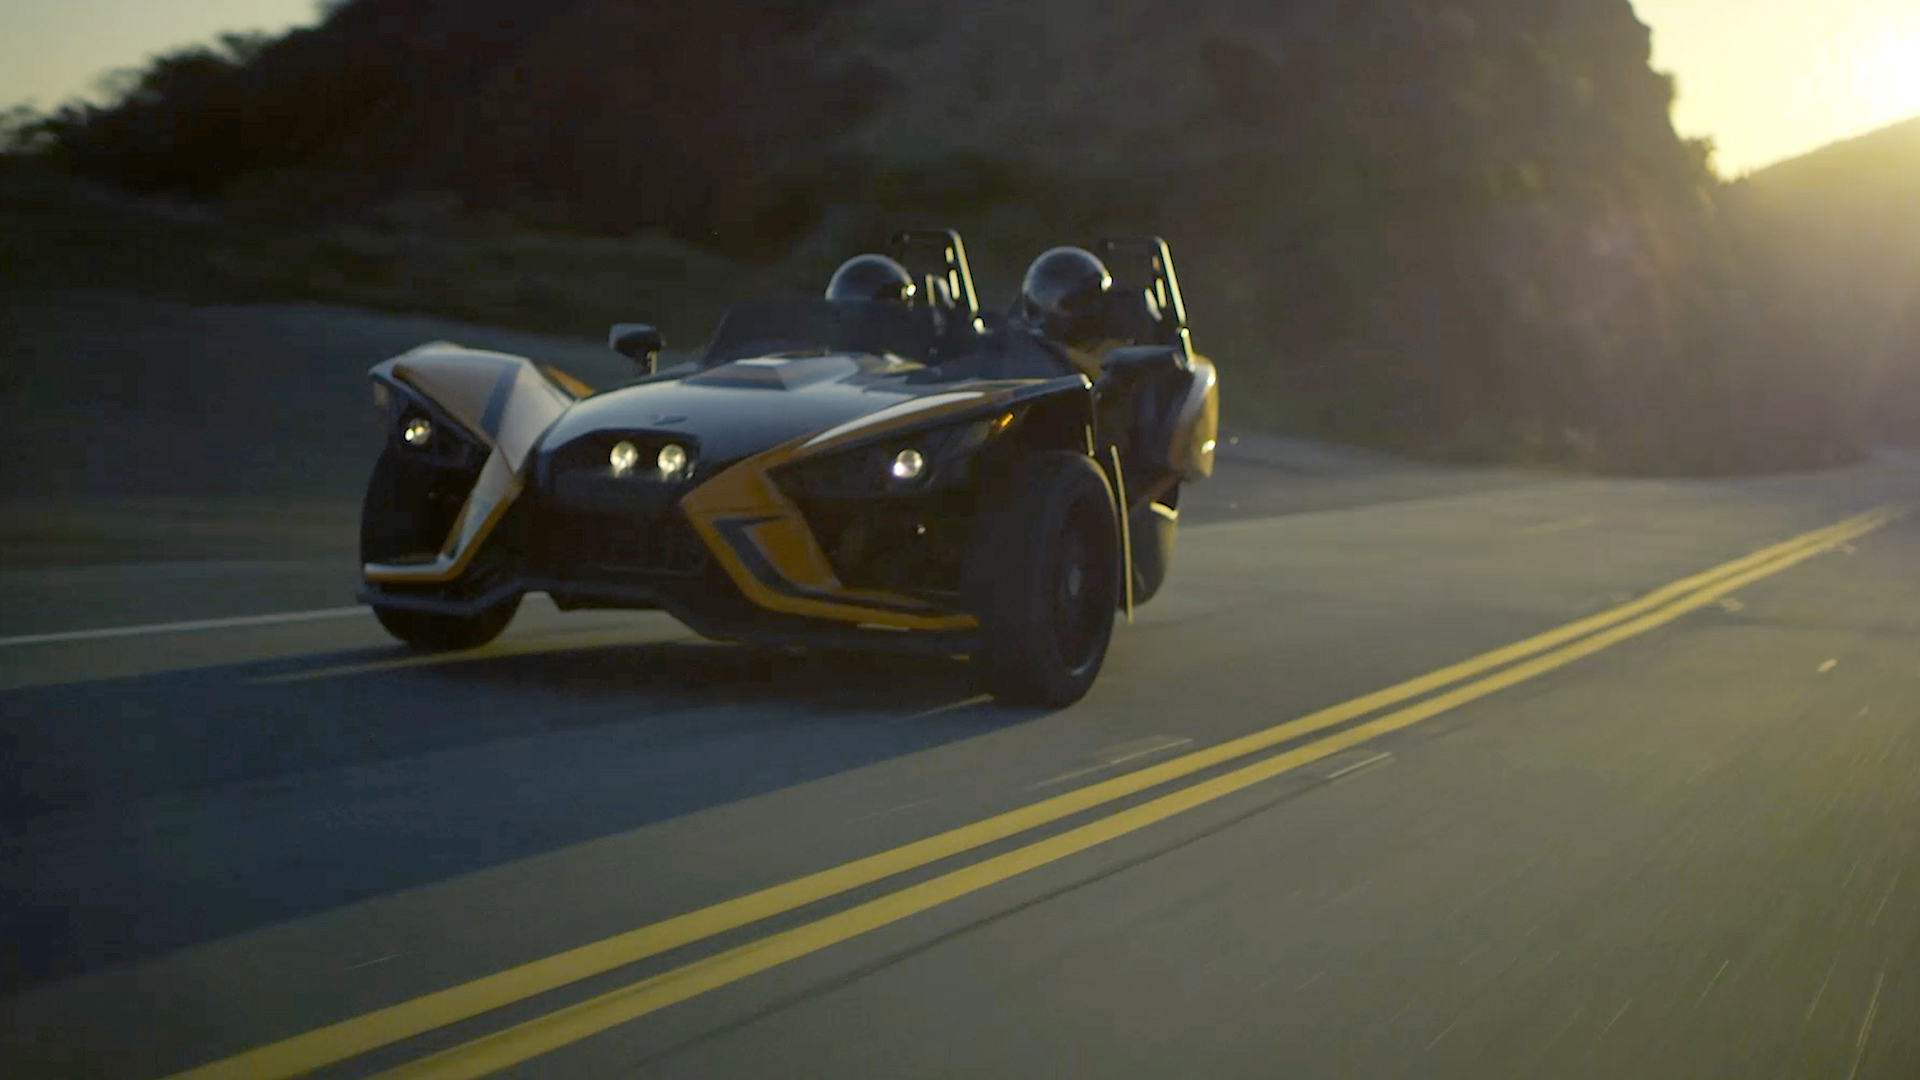 Two seat roadster driving down curvy road at dusk